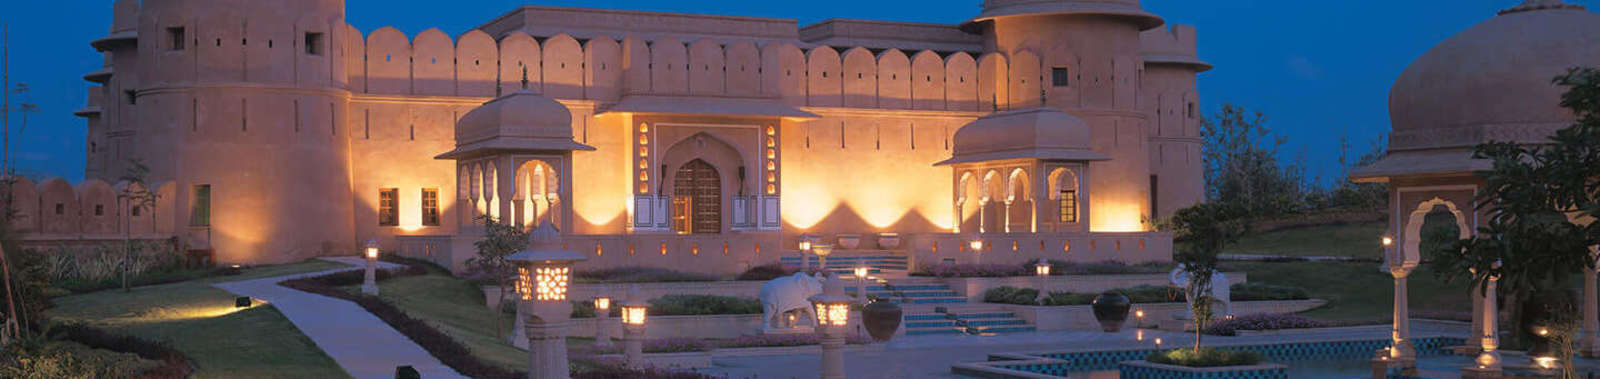 Stay at The Oberoi Raj Vilas, a luxury hotel in Jaipur